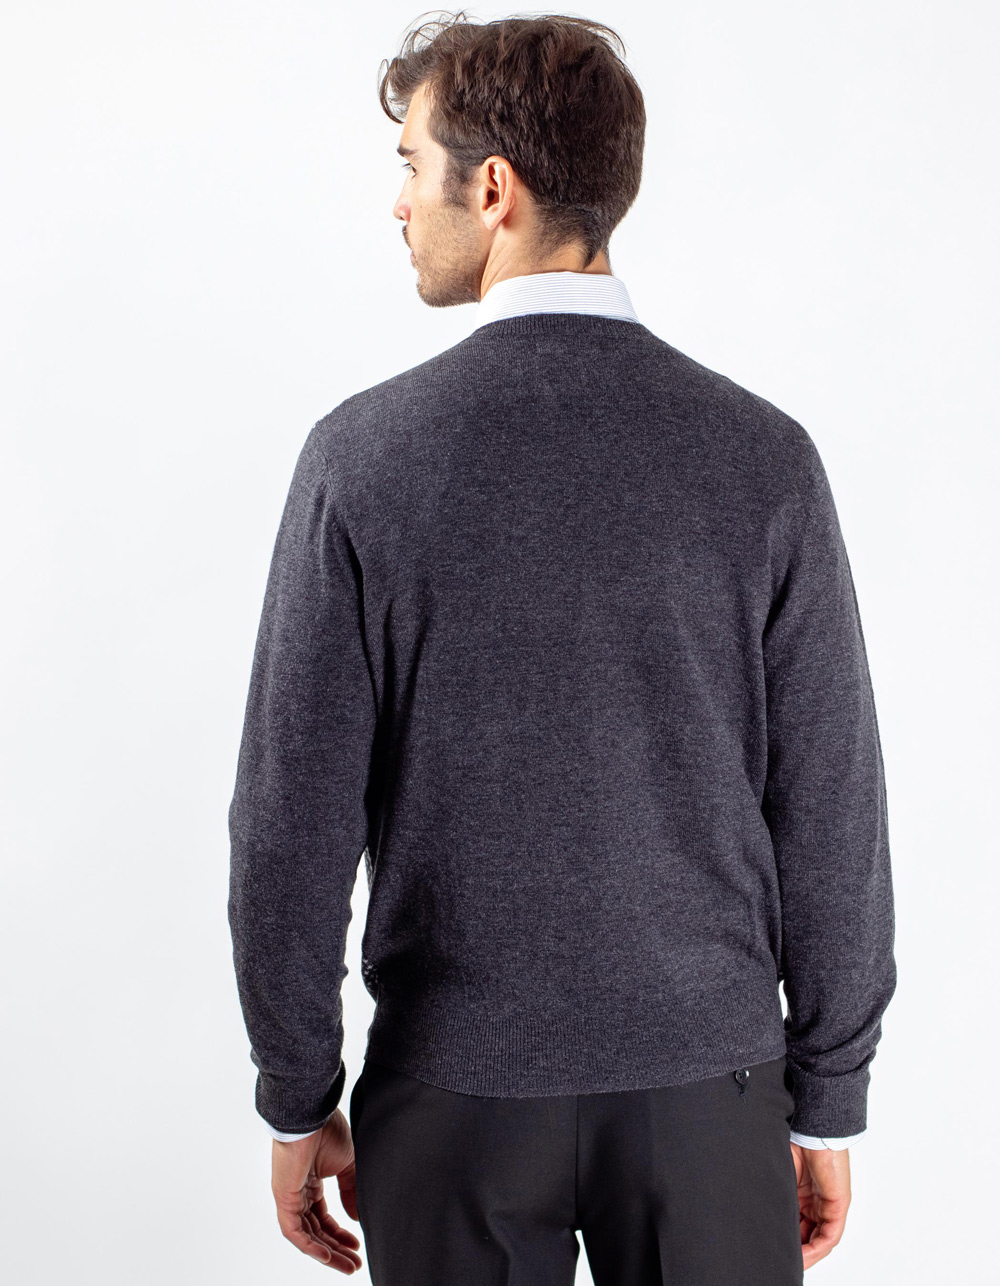 Jersey de fantasía gris - Backside